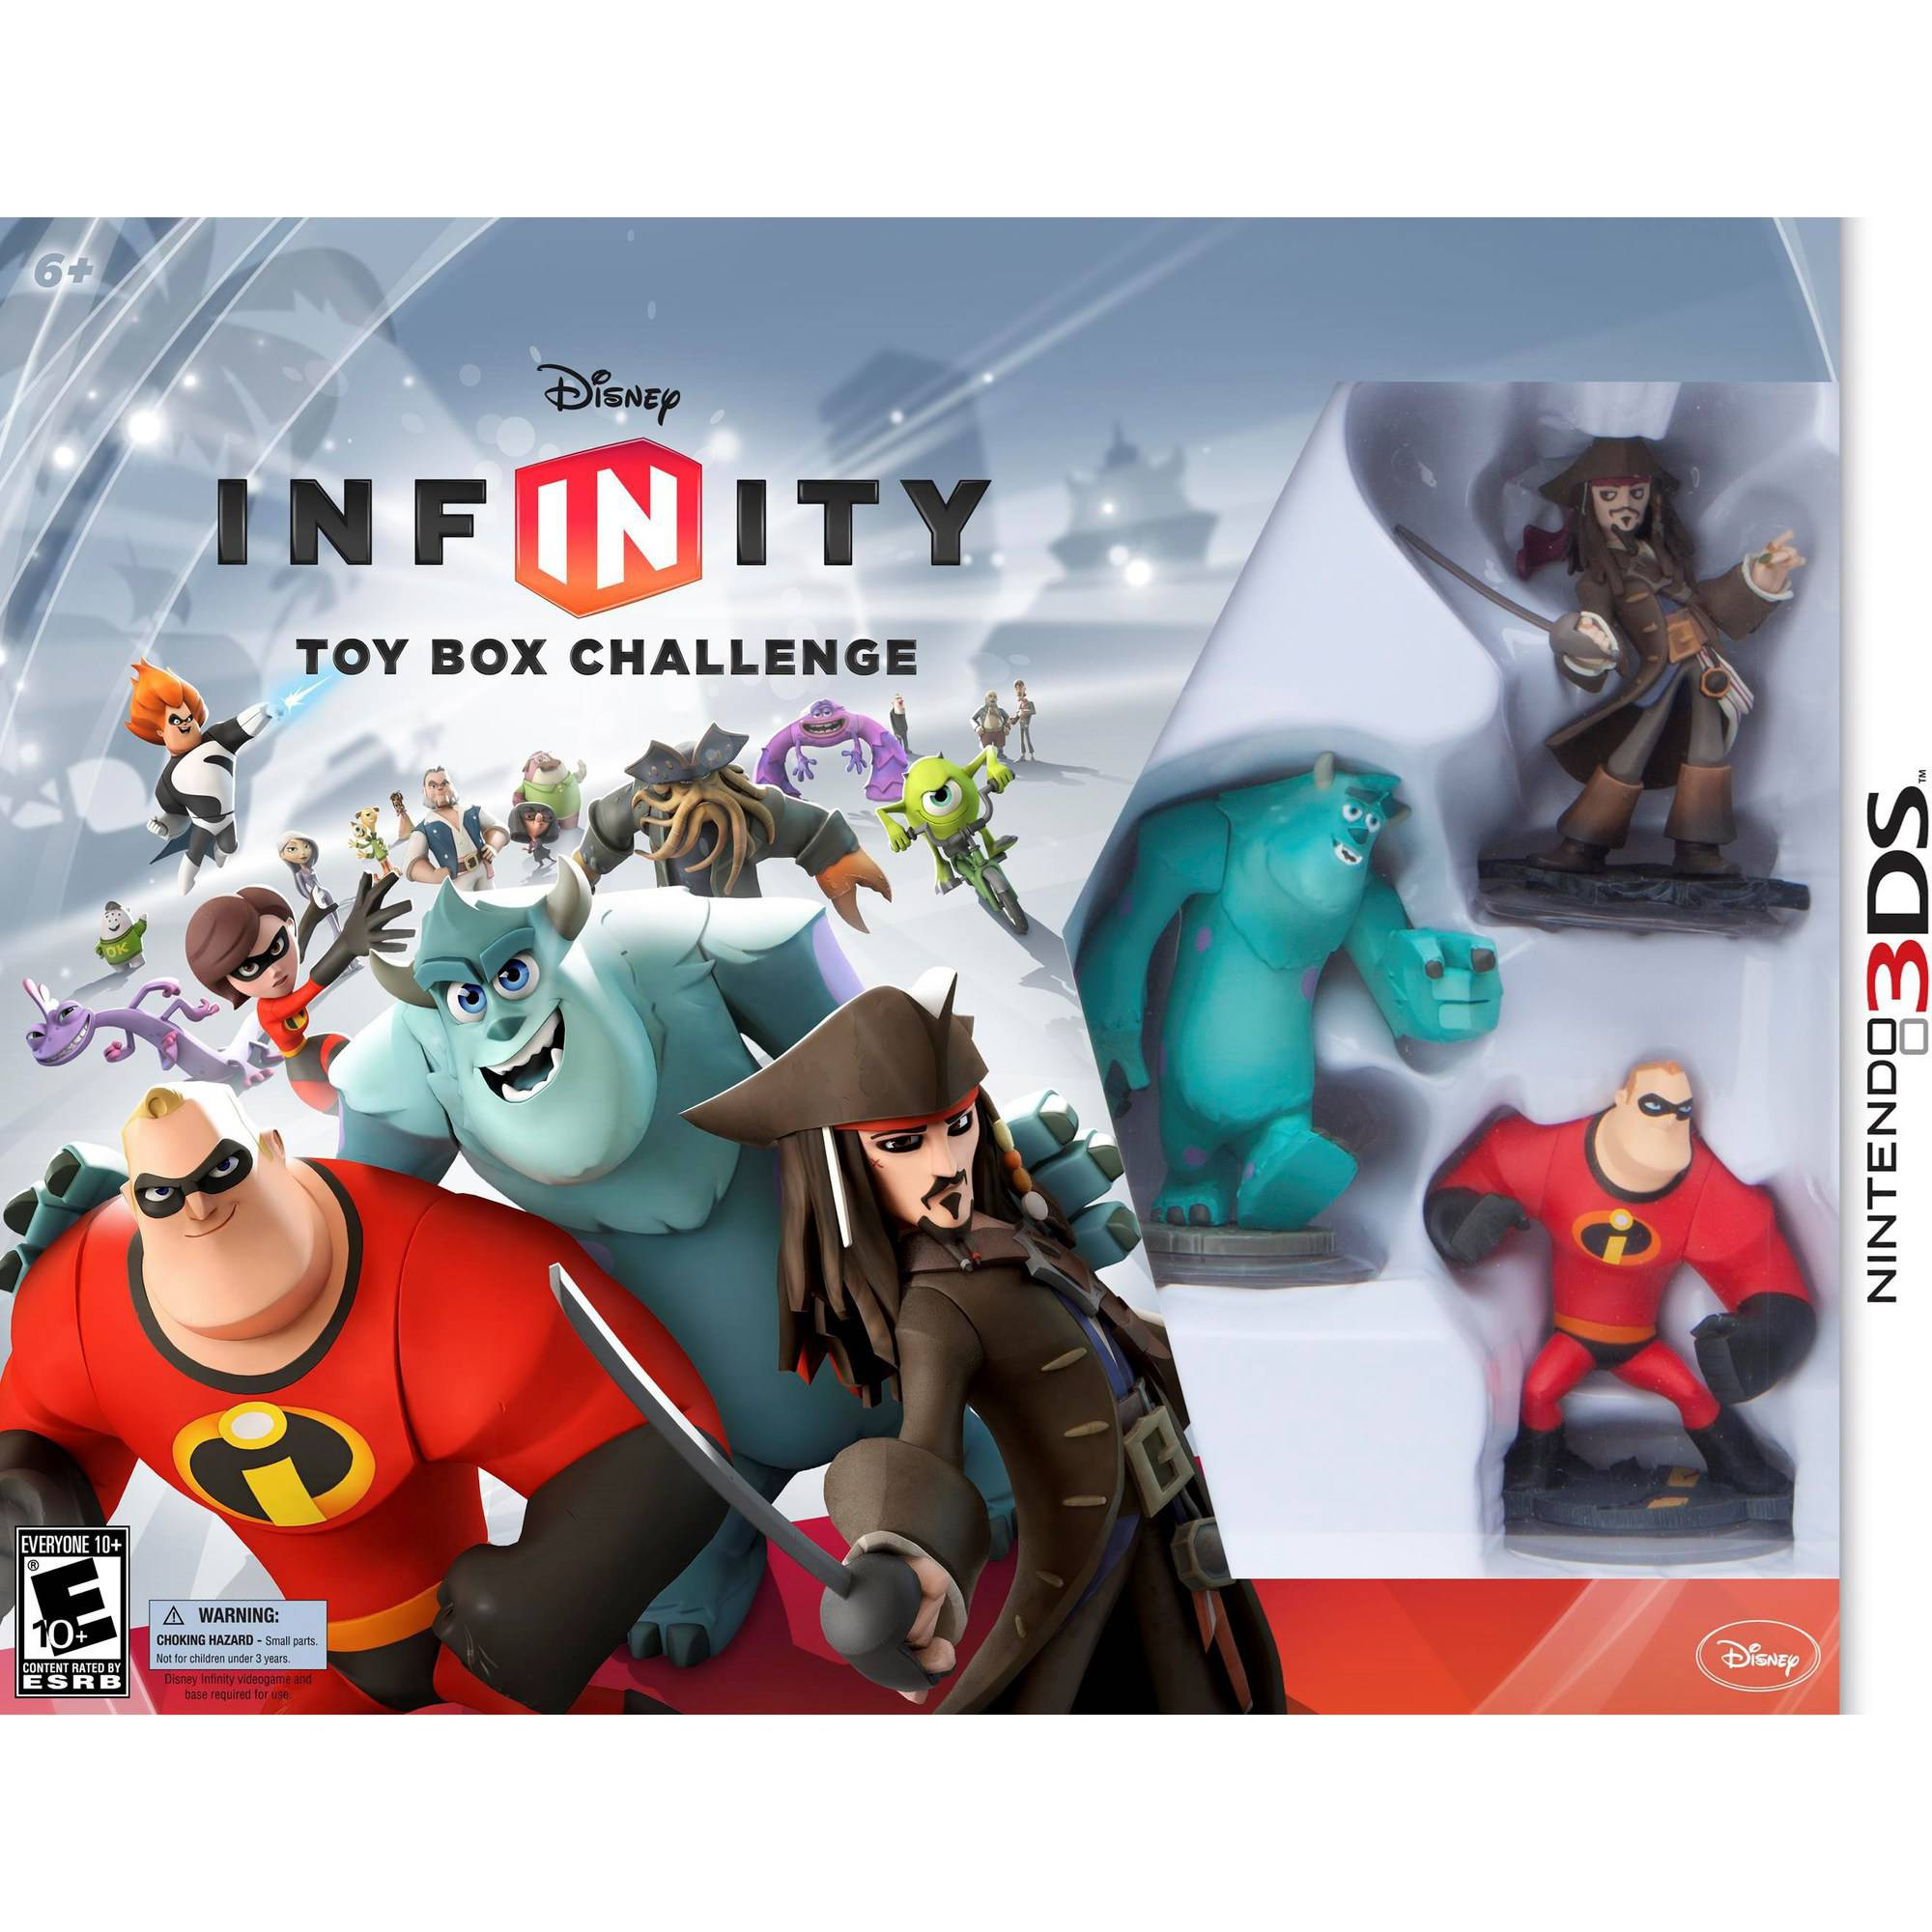 Disney Infinity Toy Box Challenge Starter Pack (Nintendo 3DS)